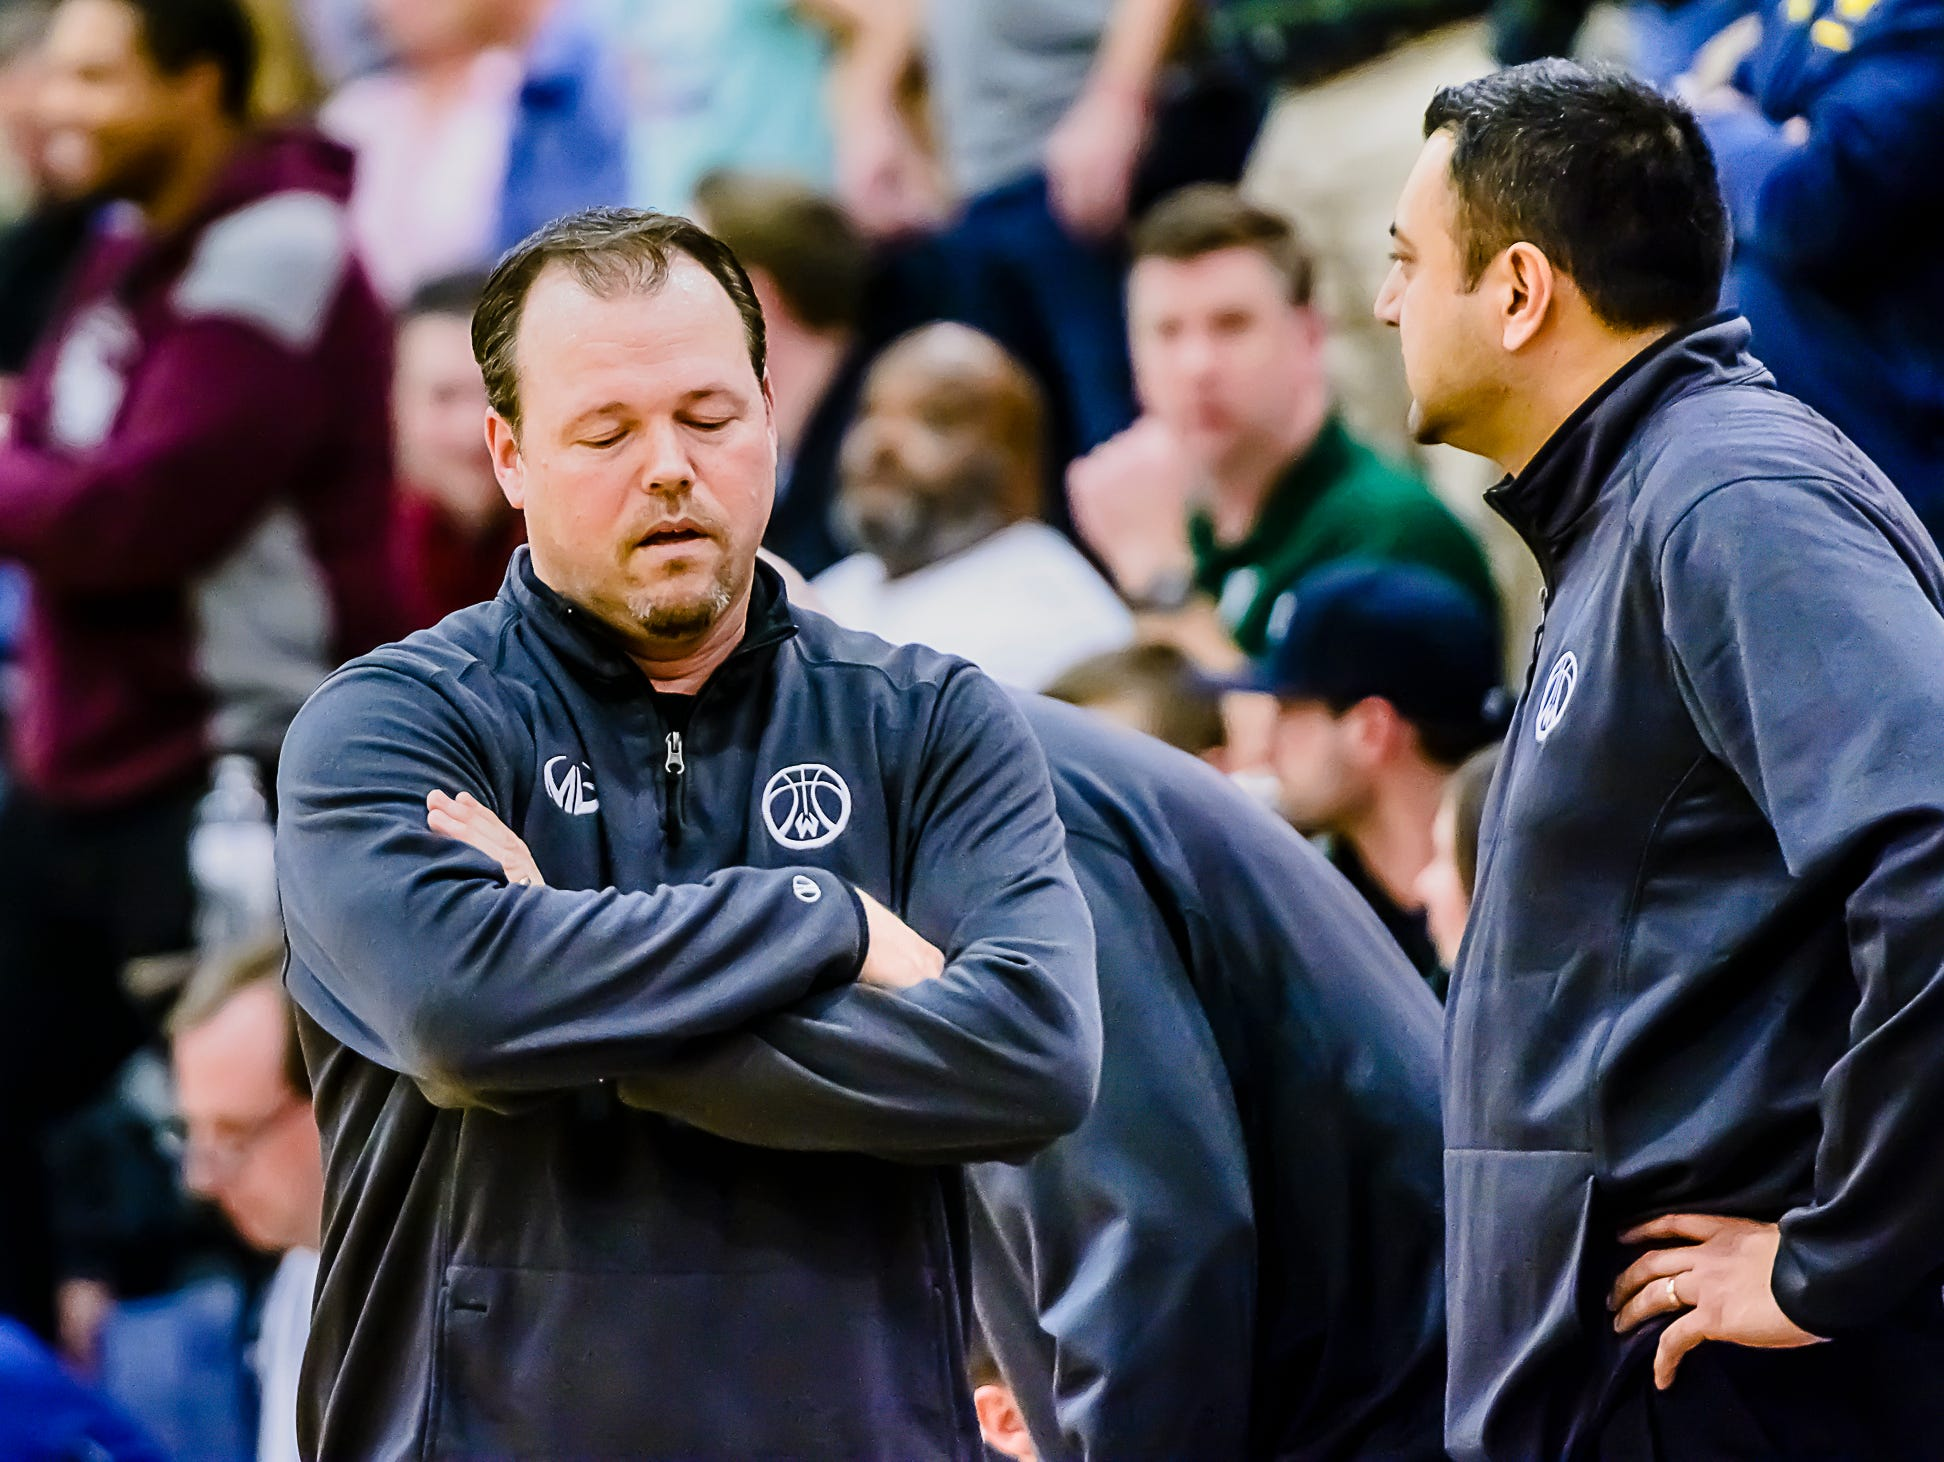 Williamston Boys Basketball Head Coach Tom Lewis ,left, reacts after River Rouge hit a 3-point shot to take a 54-51 lead with 3.8 seconds remaining in their Class B state quarterfinal game Tuesday March 21, 2017 at Chelsea High School in Chelsea. KEVIN W. FOWLER PHOTO